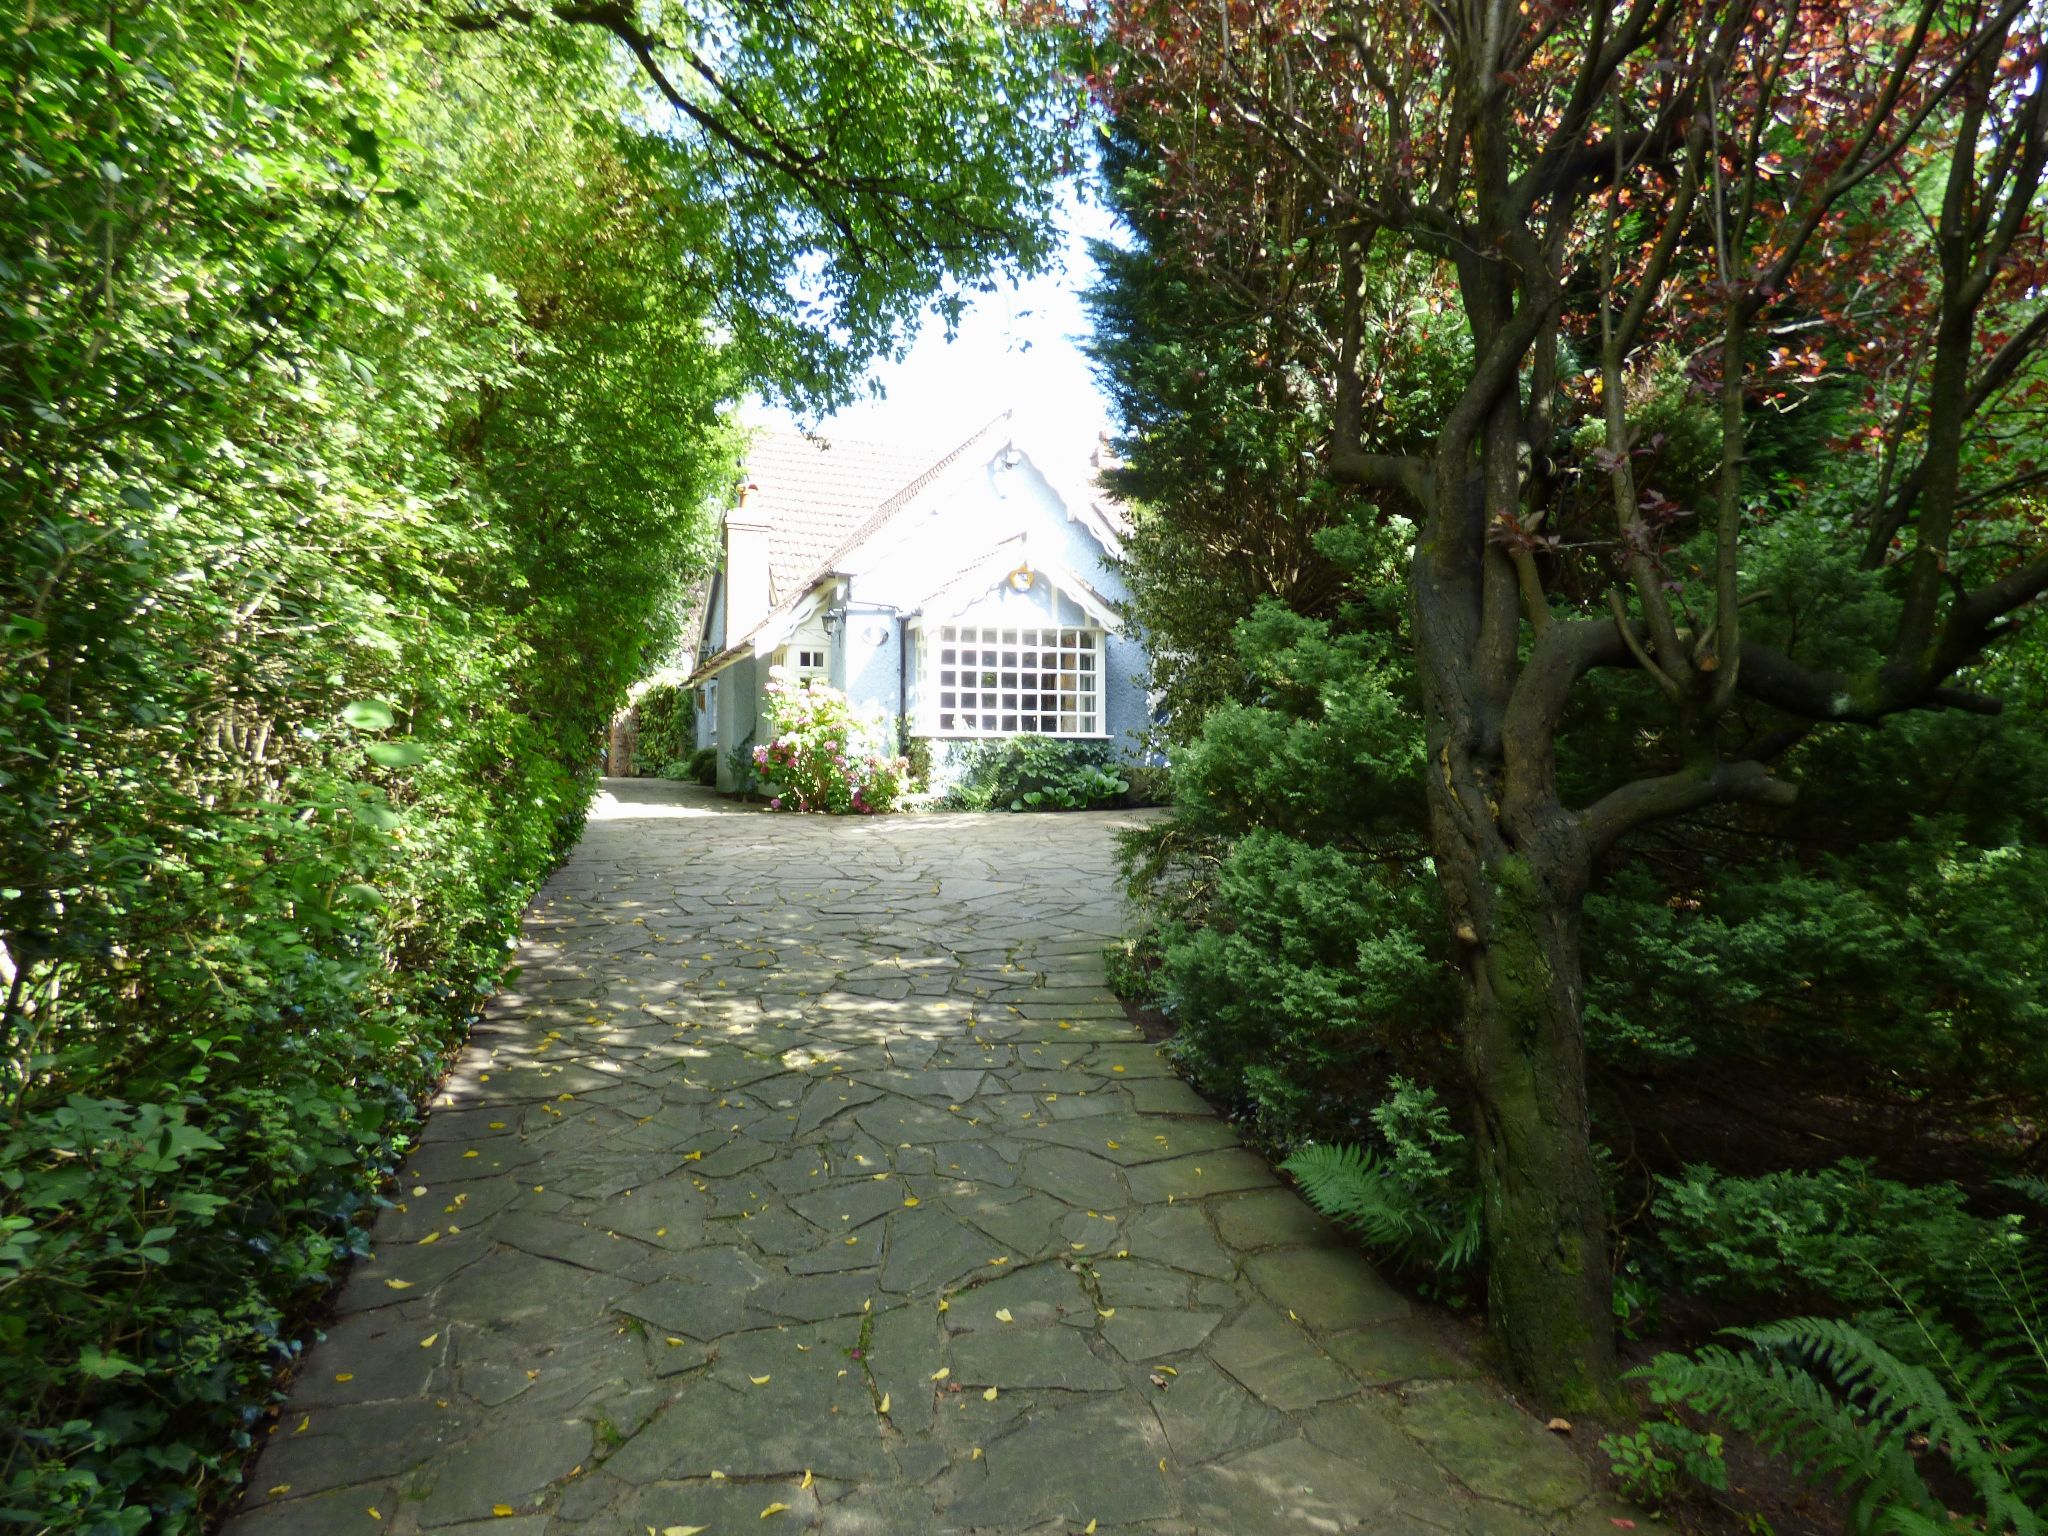 5 Bedroom Detached House For Sale - Driveway Access